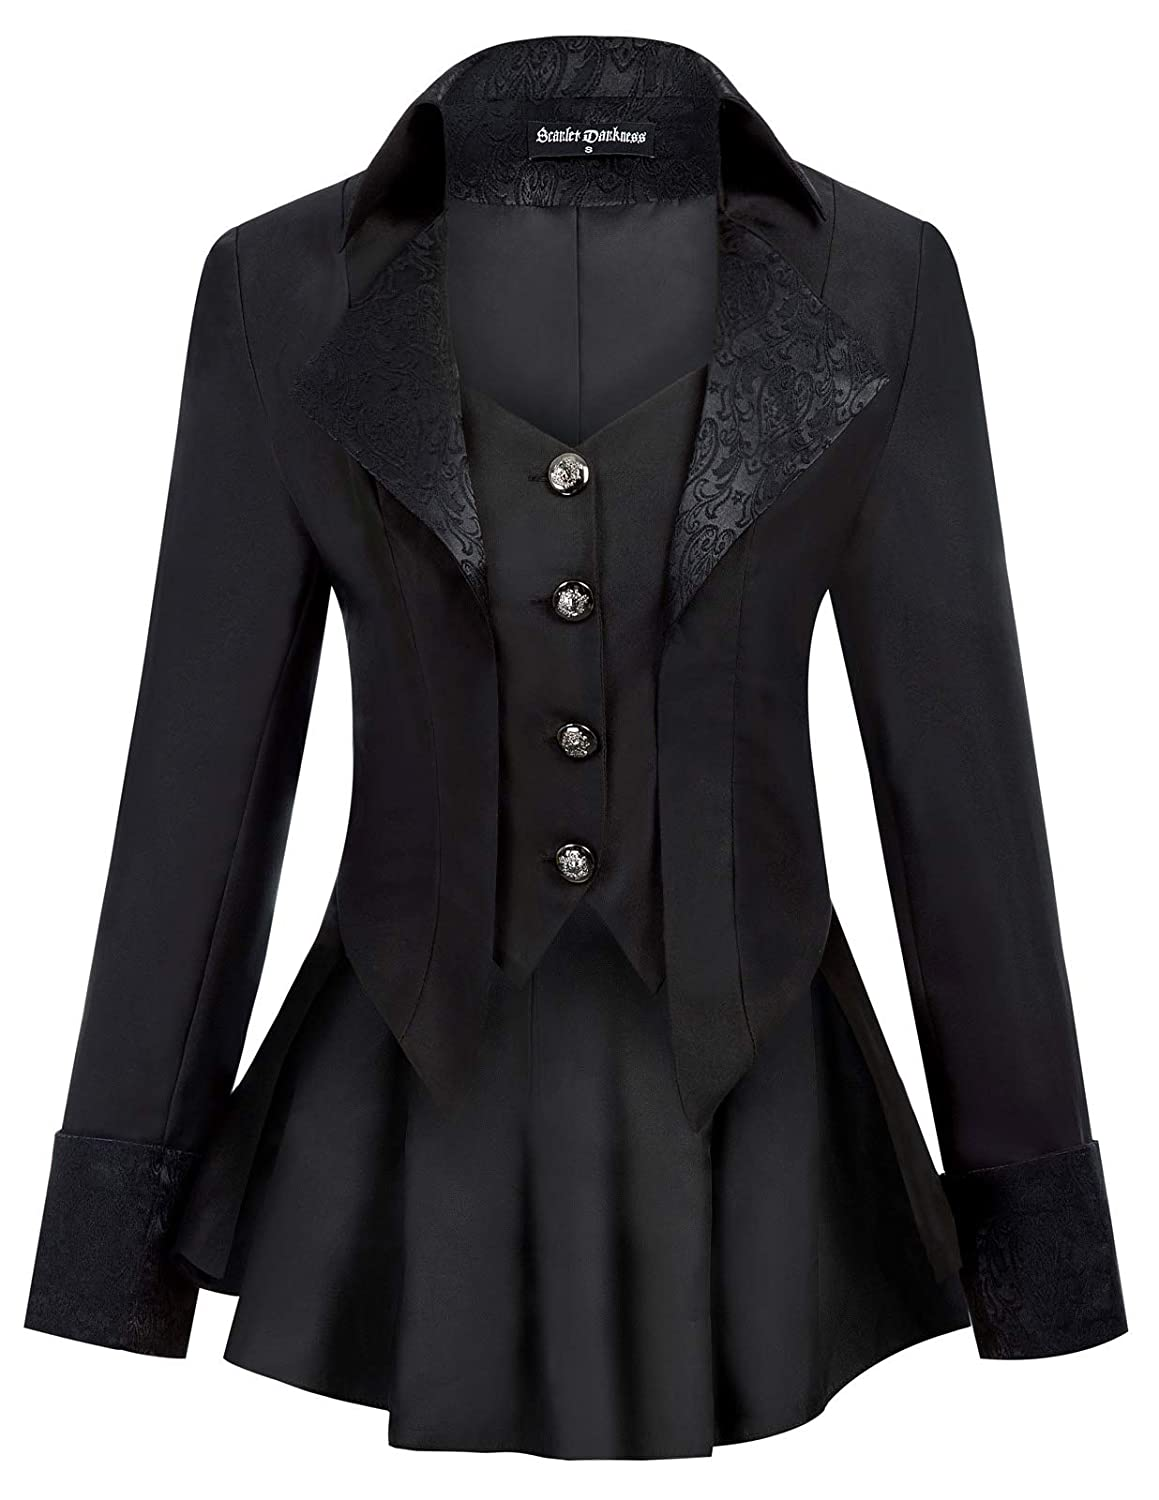 Steampunk Jacket | Steampunk Coat, Overcoat, Cape SCARLET DARKNESS Womens Gothic Jacket Vampire Riding Tail Coat Renaissance Costume False 2pcs $41.90 AT vintagedancer.com